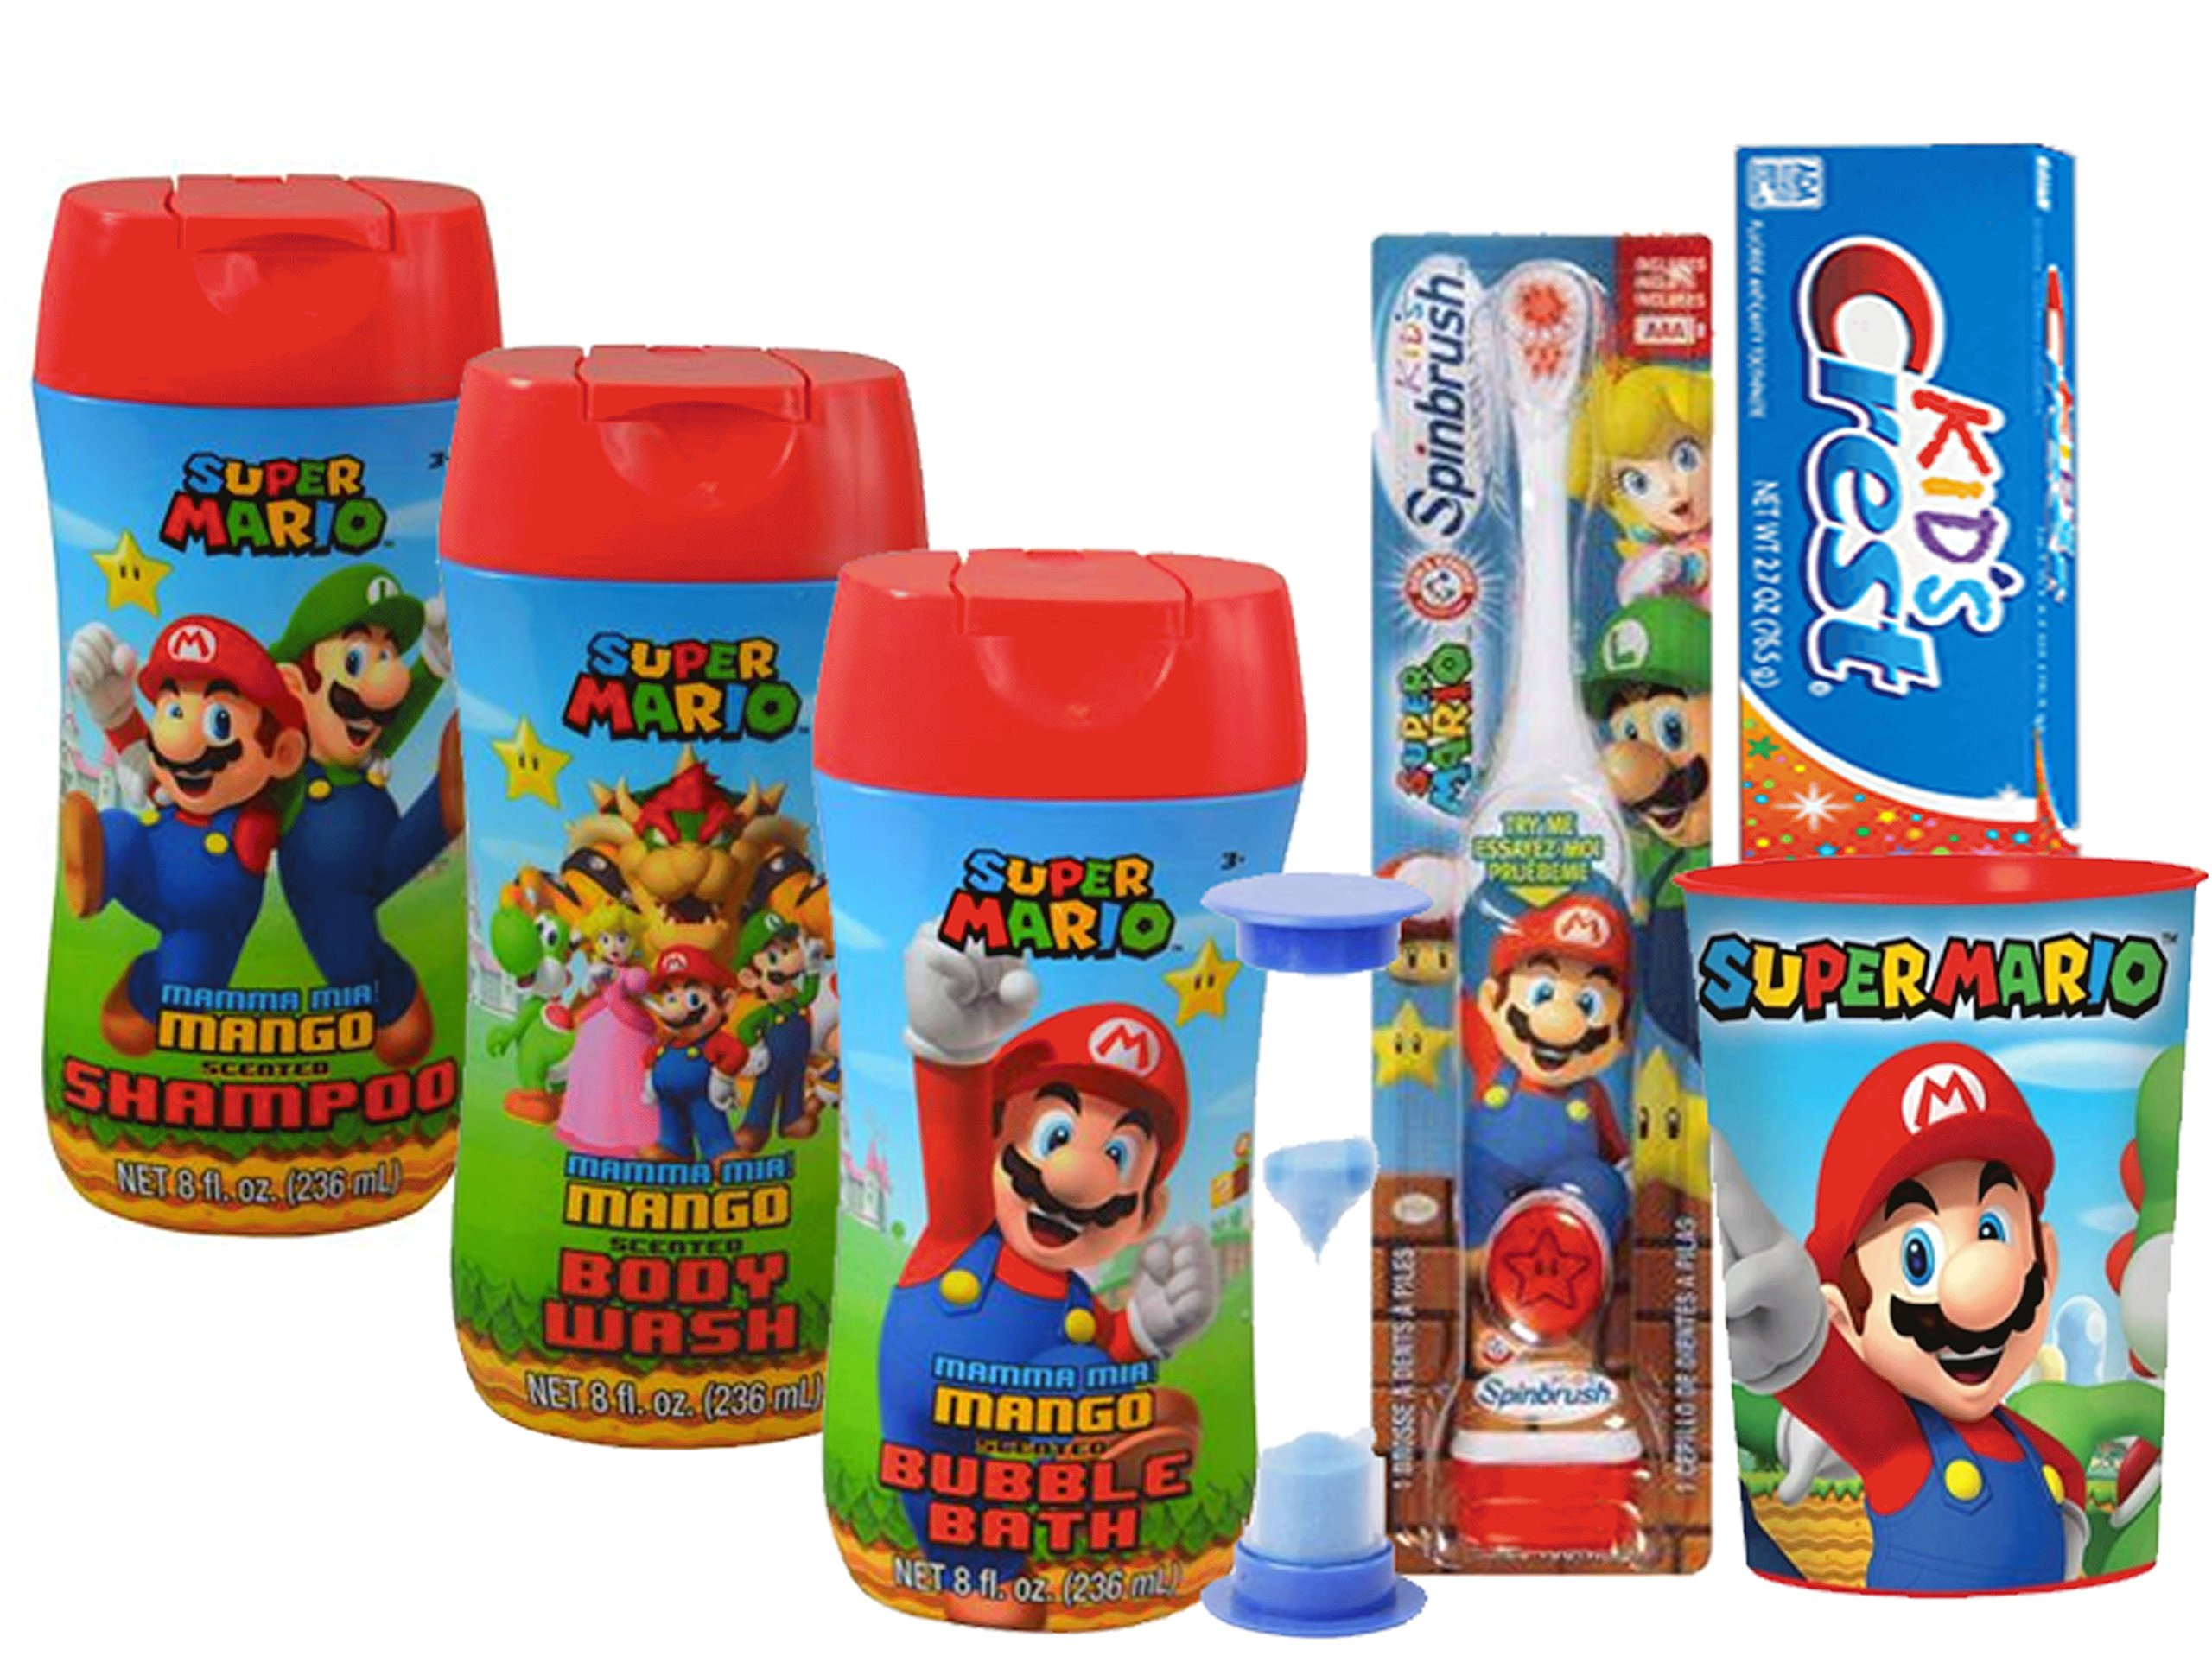 Super Mario Brothers Boys All Inclusive Bath Time Stocking Stuffer Set! Includes Body Wash, Shampoo, Bubble Bath, Toothbrush, Toothpaste, Brushing Timer & Mouthwash Rinse Cup!